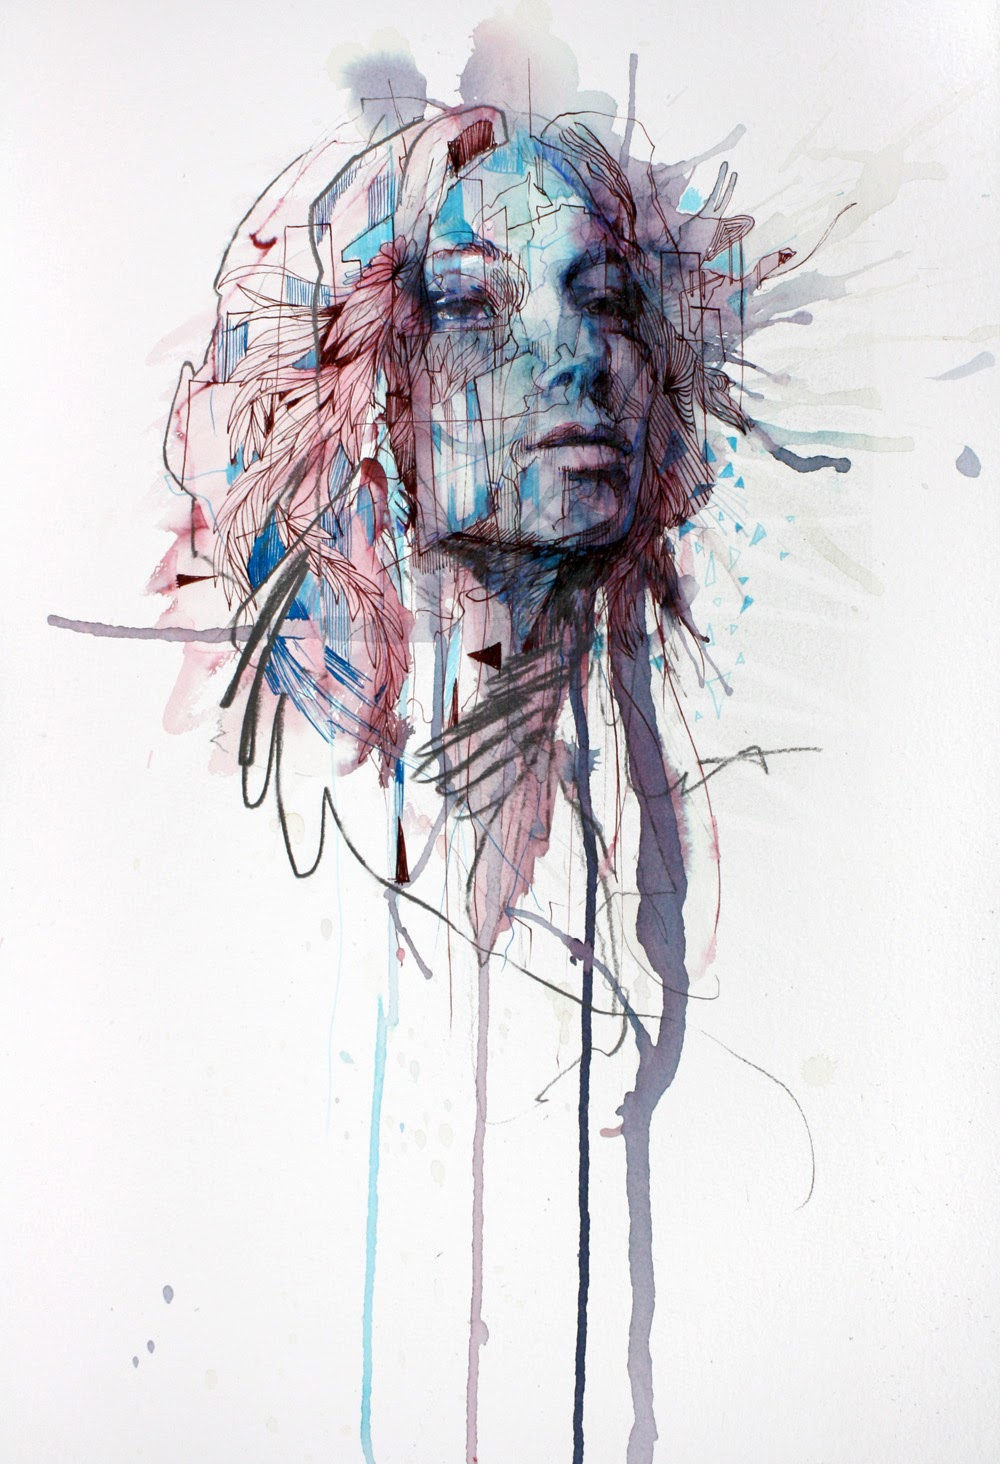 14-Unwind-Carne-Griffiths-Tea-Alcohol-Brandy-Vodka-www-designstack-co